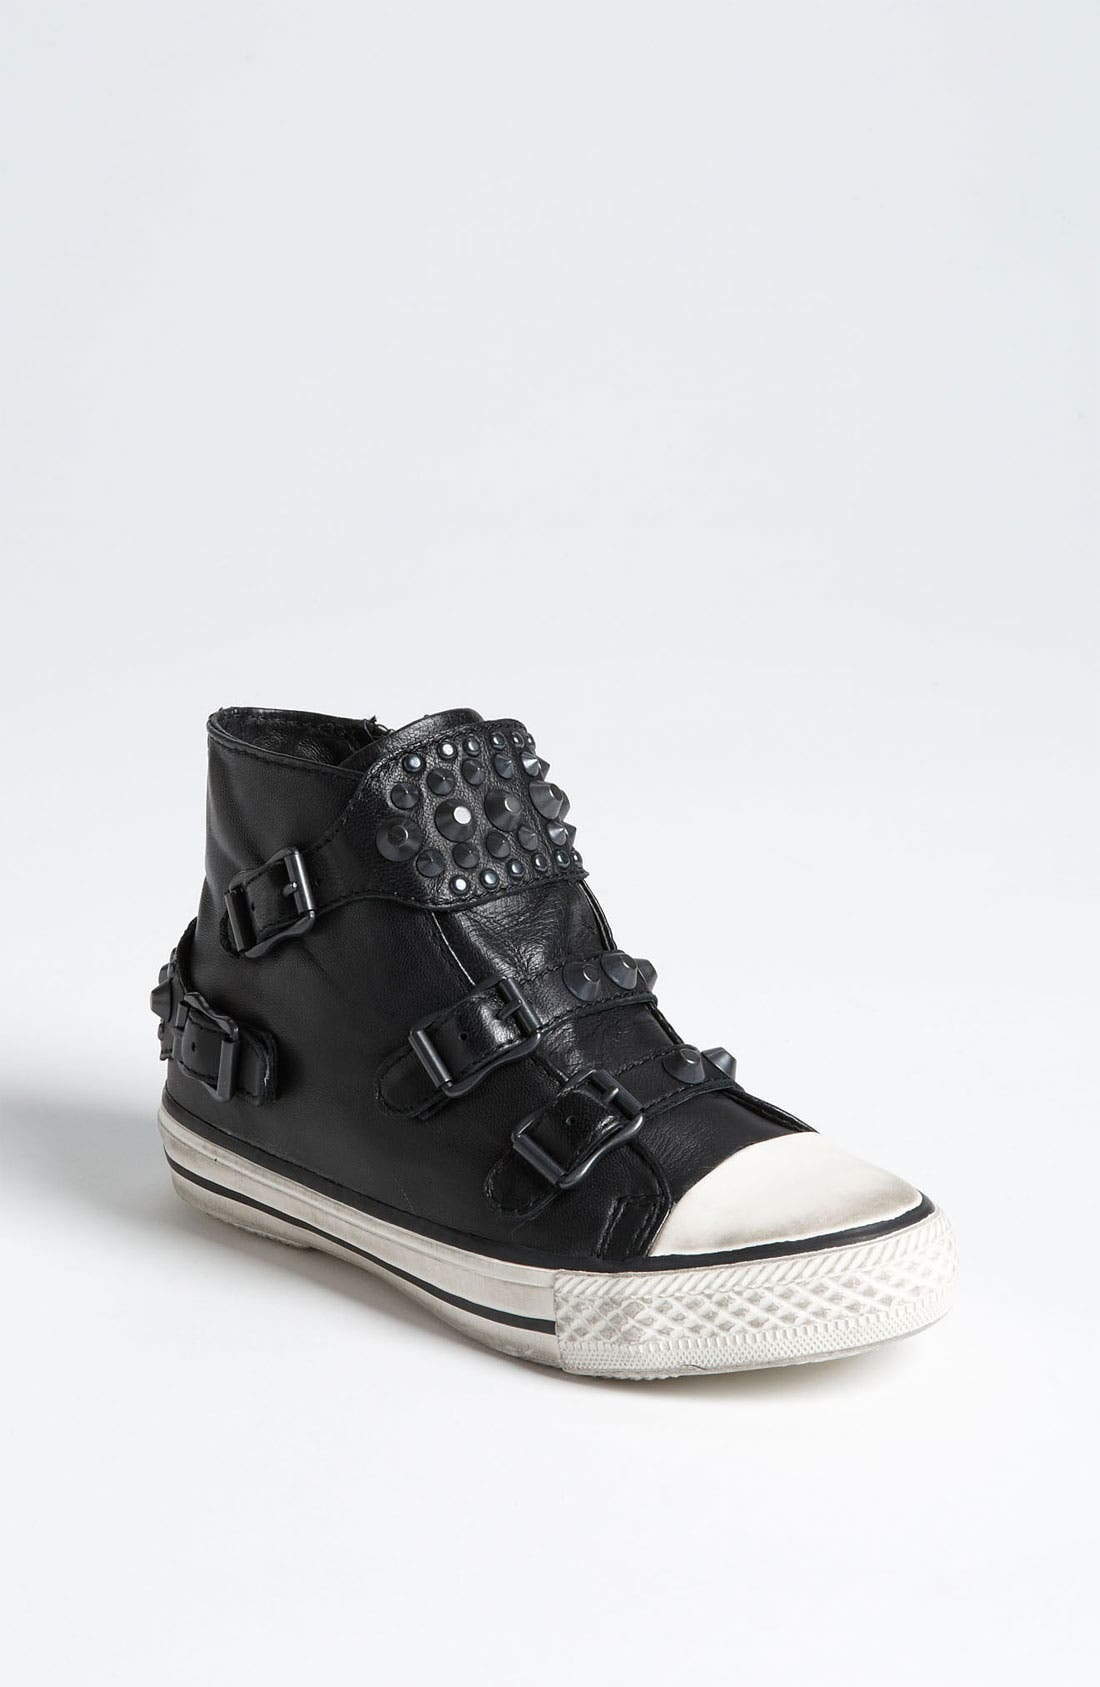 Main Image - Ash 'Frog' Sneaker (Toddler, Little Kid & Big Kid)